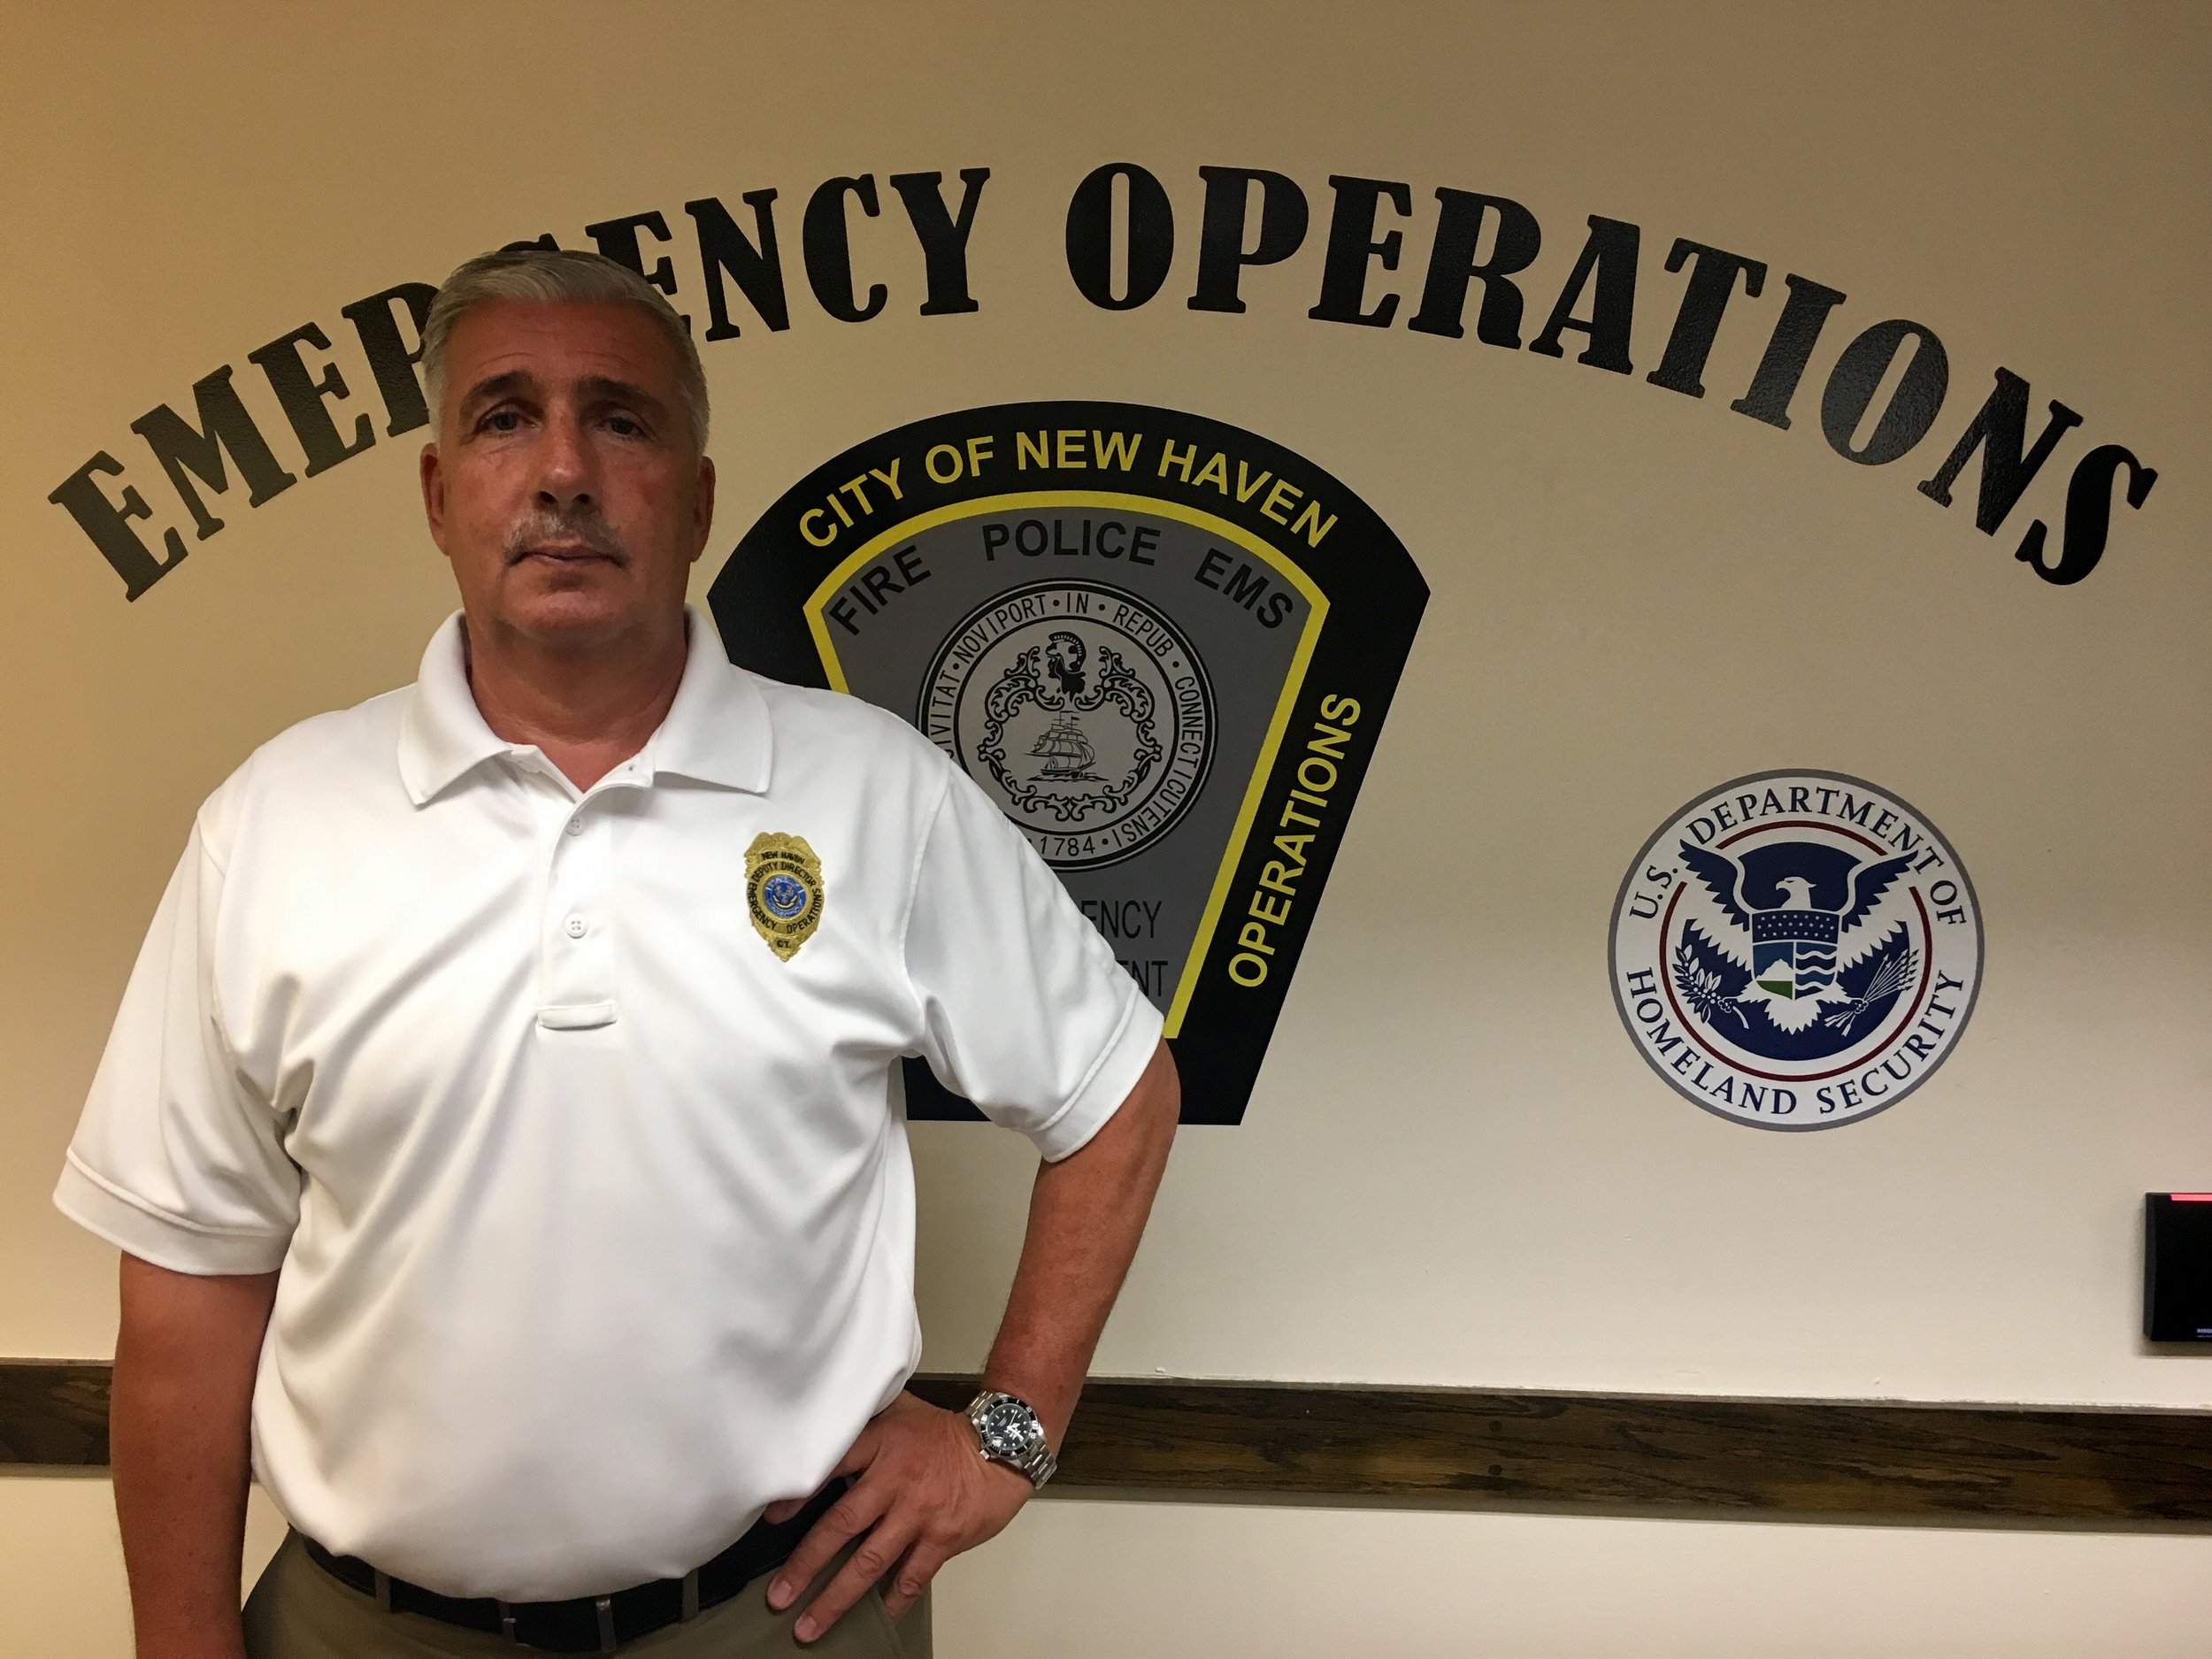 Rick Fontana, Deputy Director of Emergency Operations - New Haven